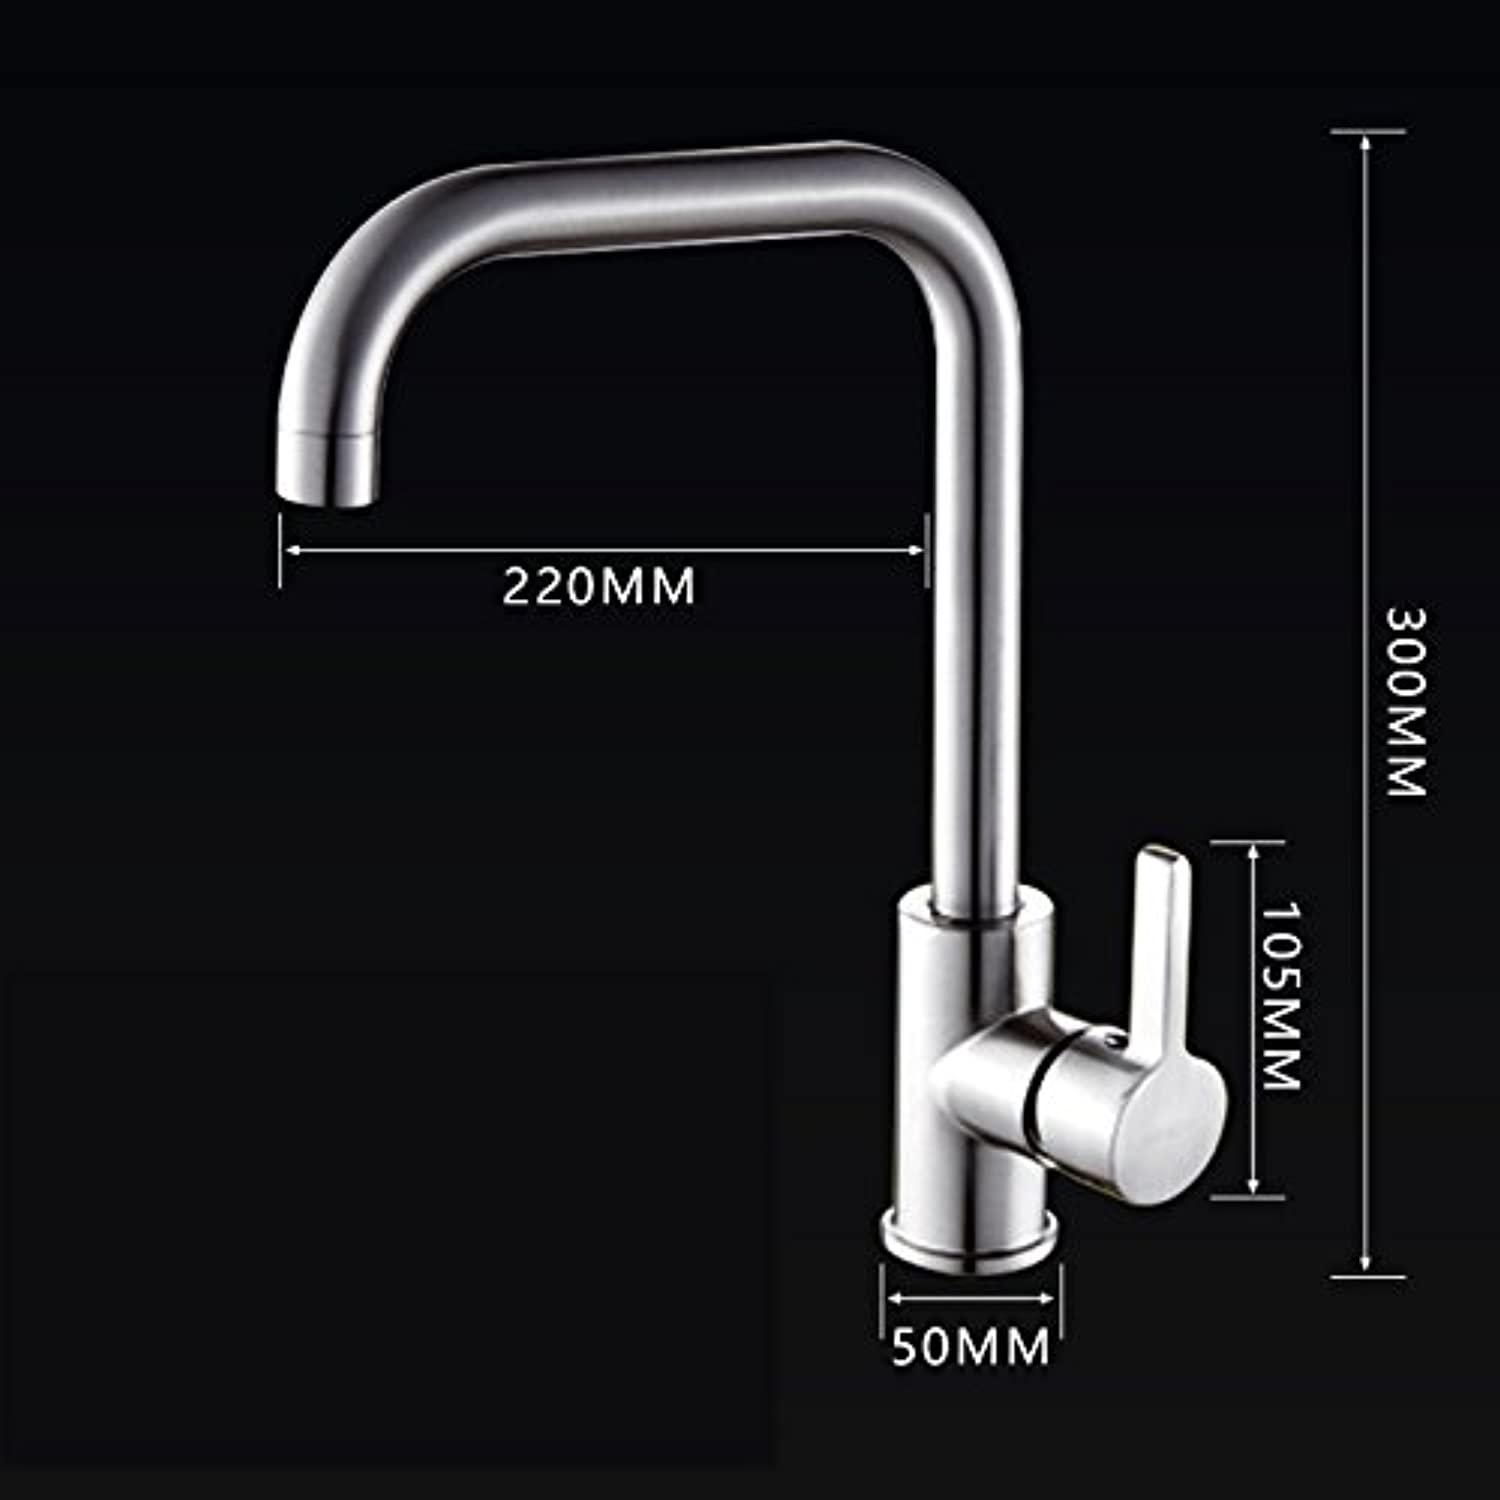 Hlluya Professional Sink Mixer Tap Kitchen Faucet The copper cold water faucet redation,D